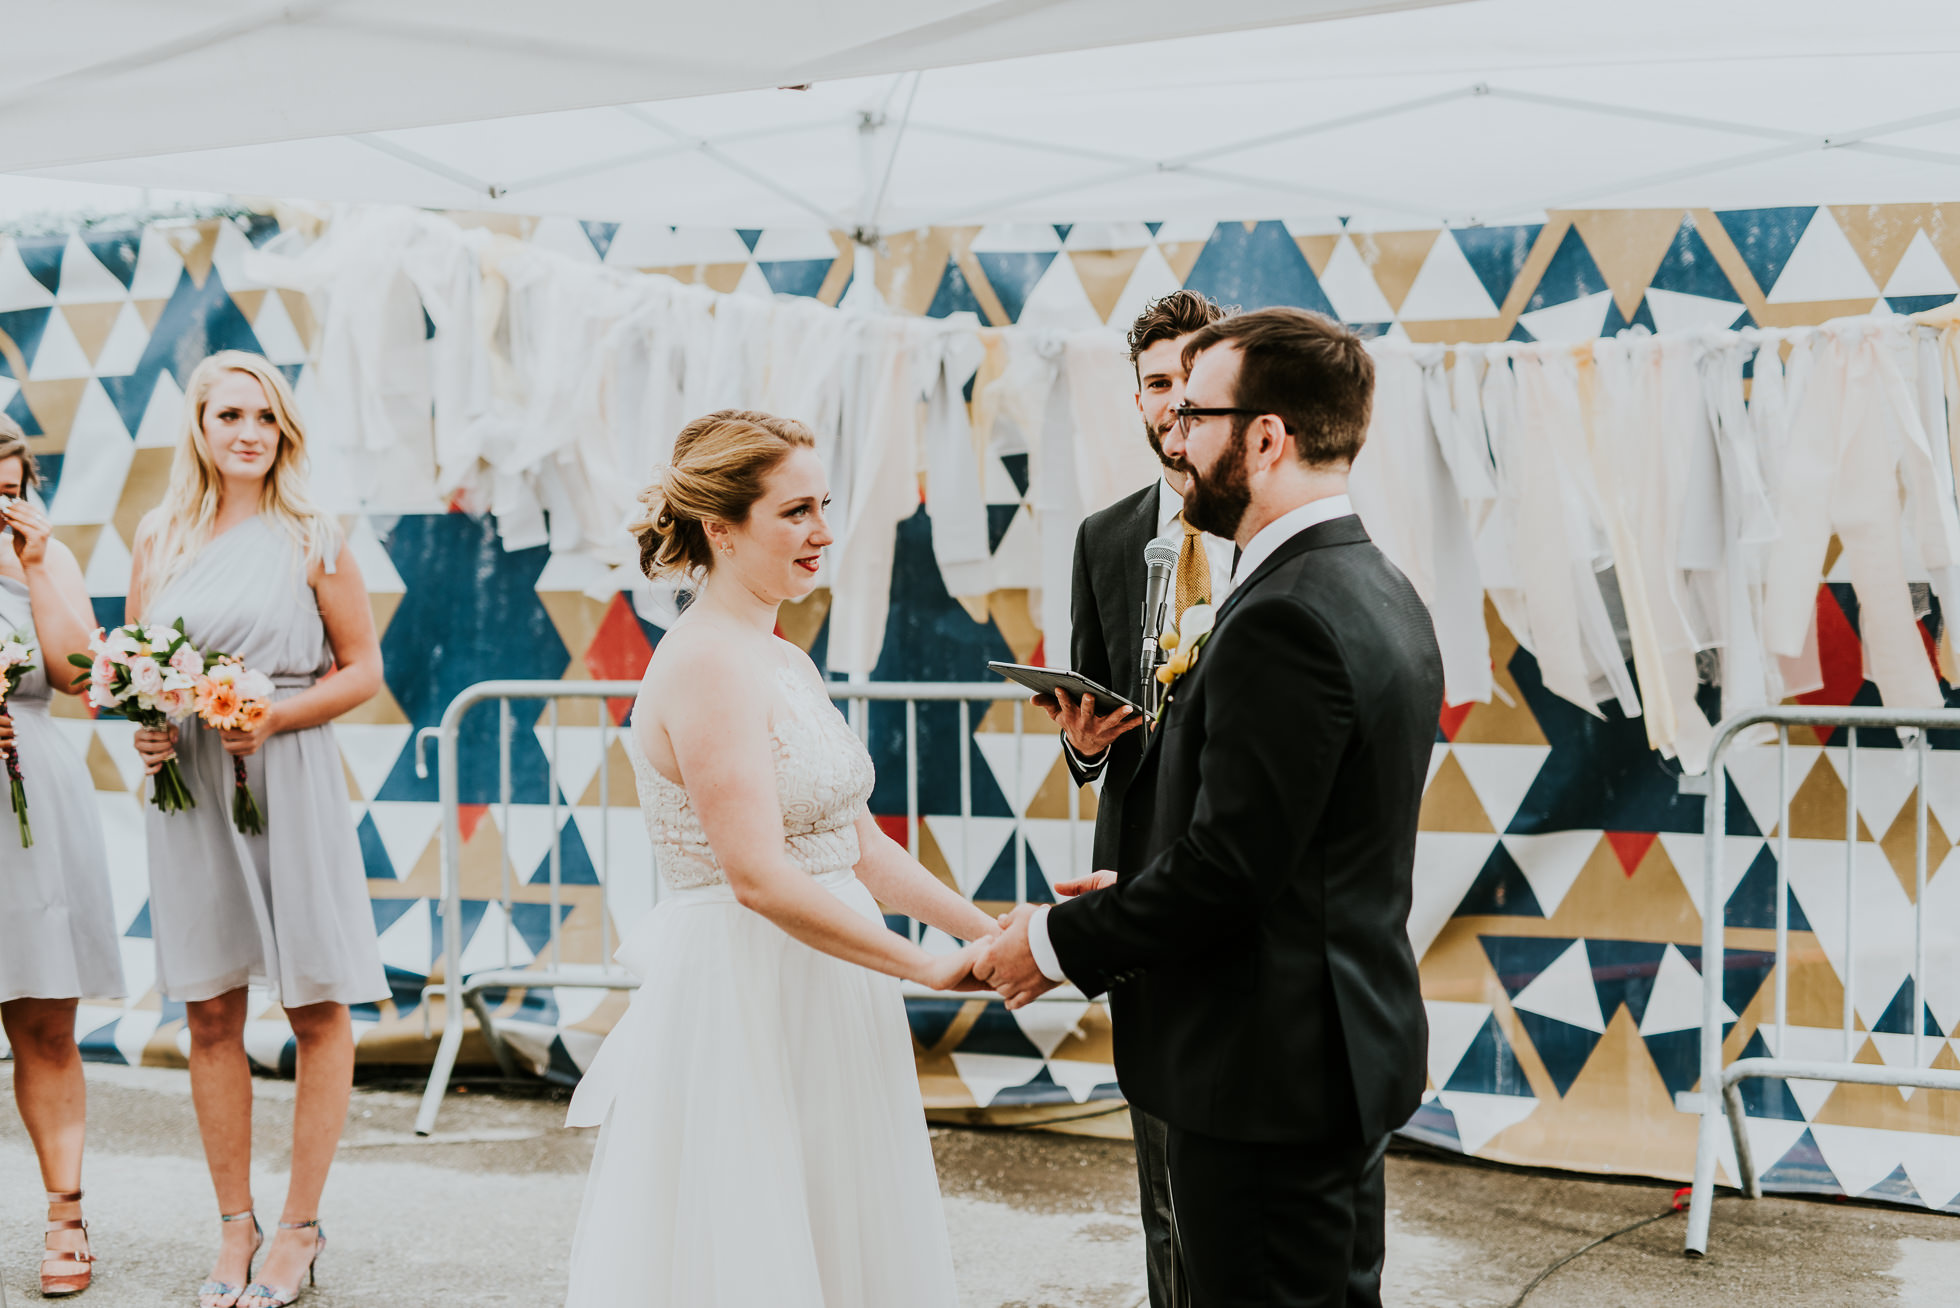 wedding ceremony brooklyn photographed by Traverse The Tides